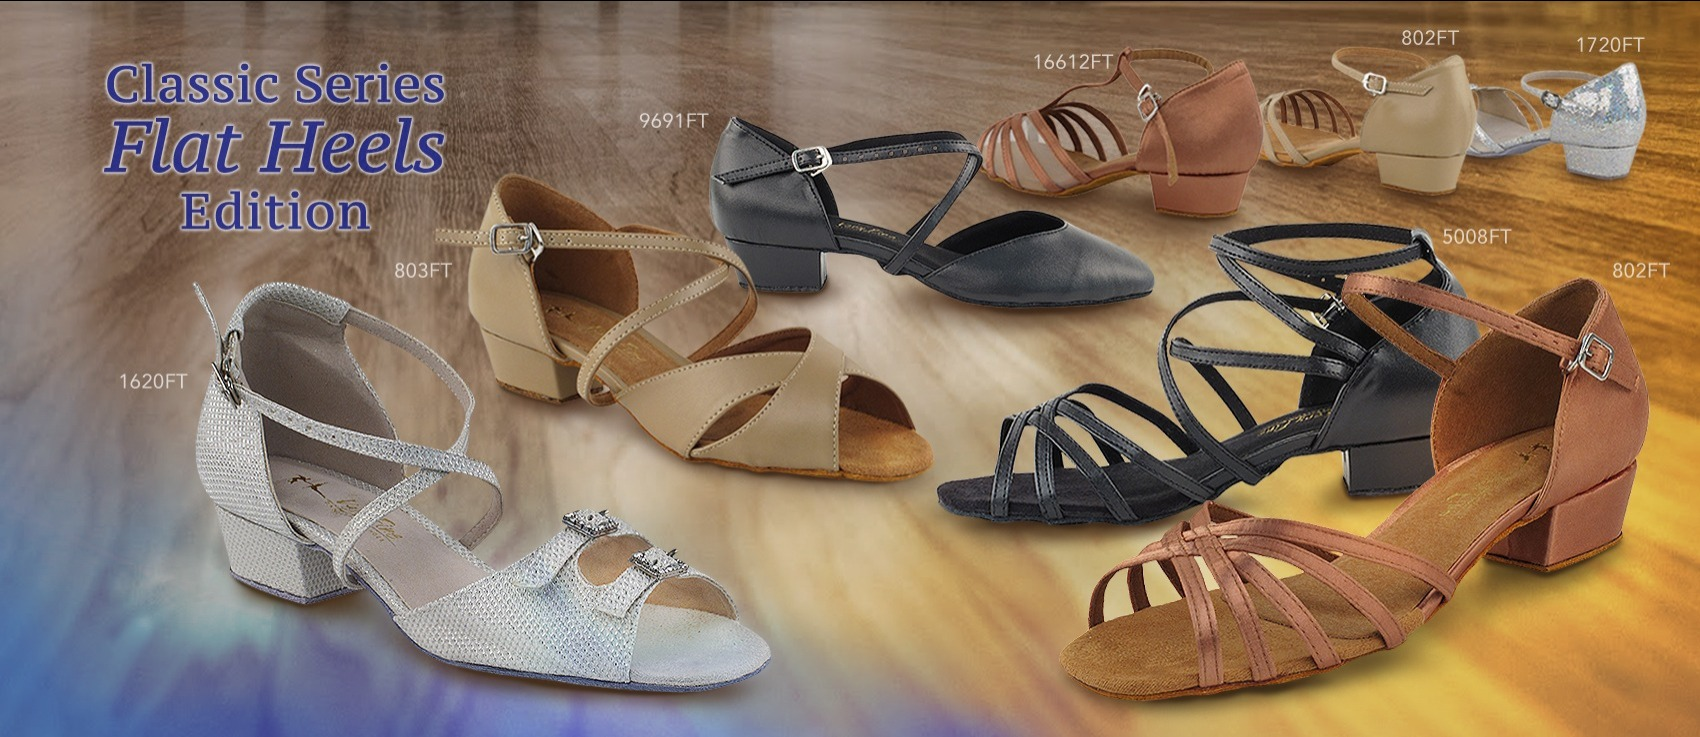 Buy Ballroom Dance Shoes Dresses Cheap Dress Image Chacha Steps Diagram Download Check Out Our New Flat 1 Heel For Those Who Want Comfort And Style While They